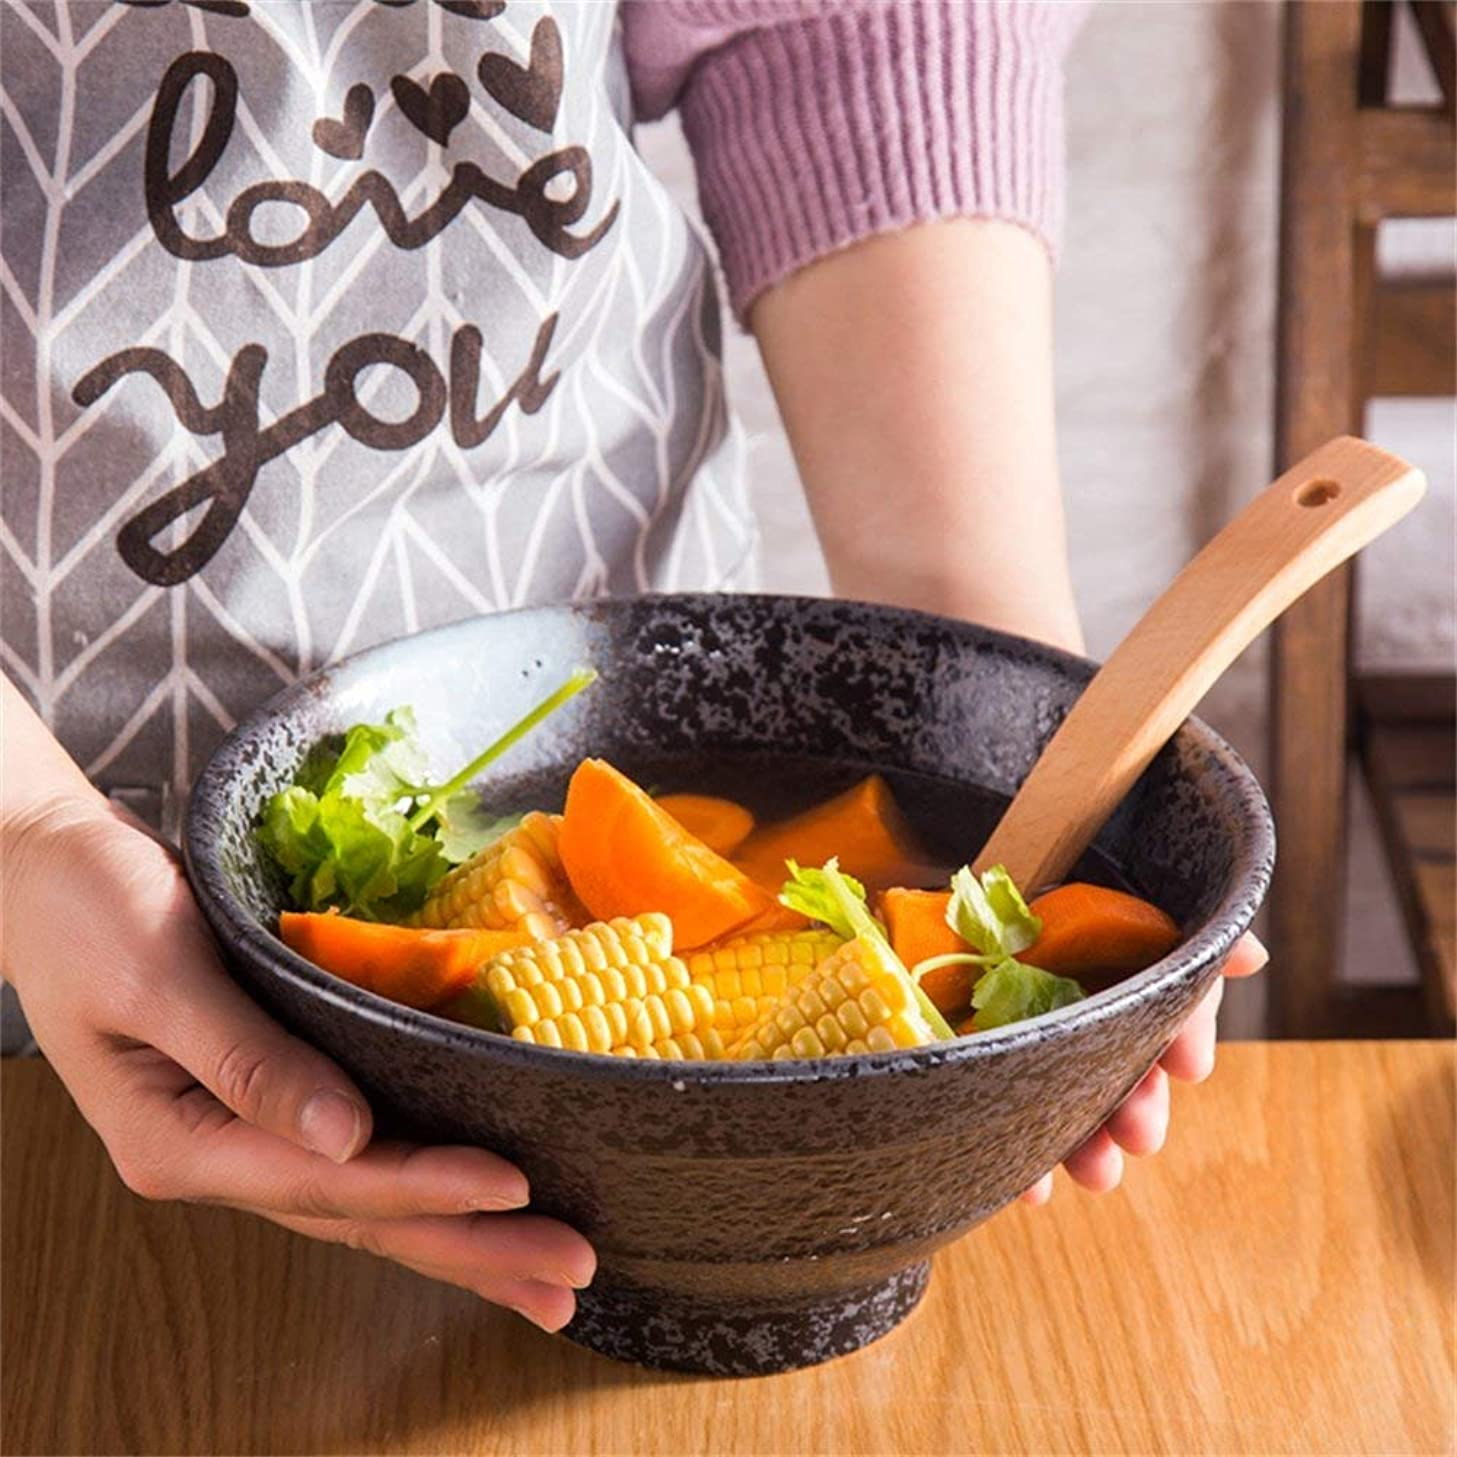 Canju Kitchenware/Tableware/Outdoor/Camping Tableware Style Large Capacity Soup Ramen Bowl Creative Fruit Salad Pasta Bowl Microwave Safe Ceramic Mixing Serving Bowls 7 Inches